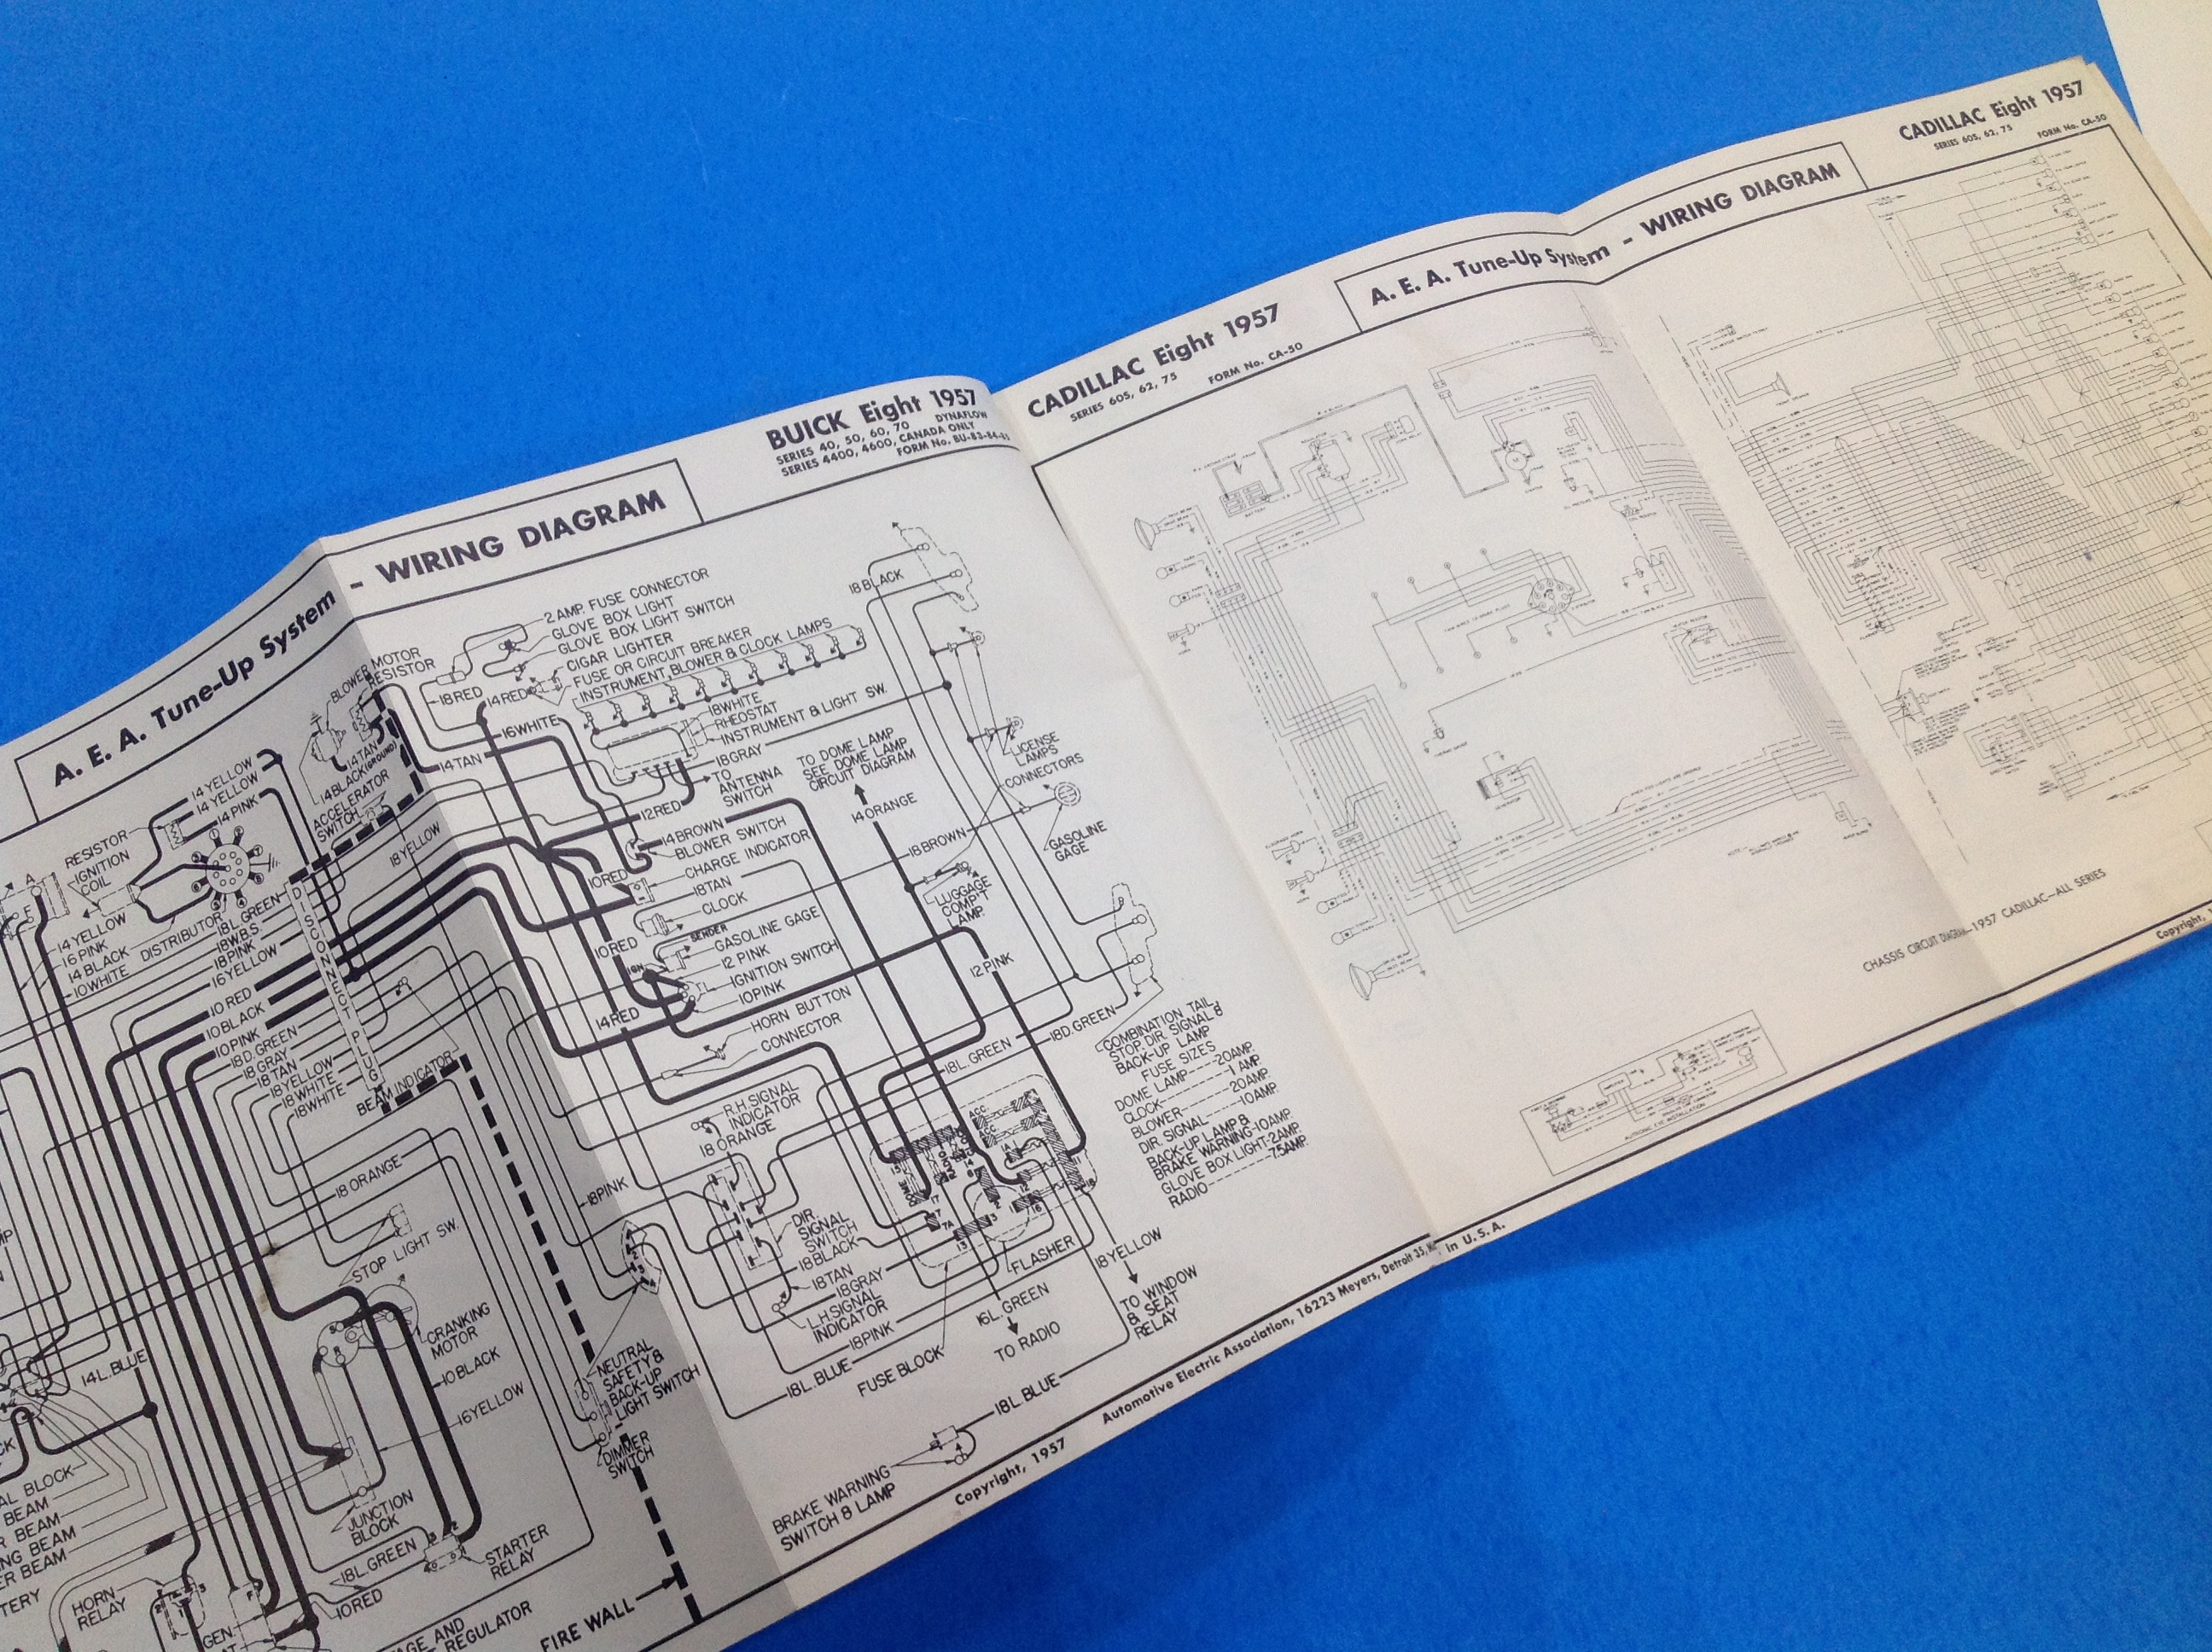 1957 - A.E.A. Wiring Diagram   NOS and RESTORED Cadillac Parts